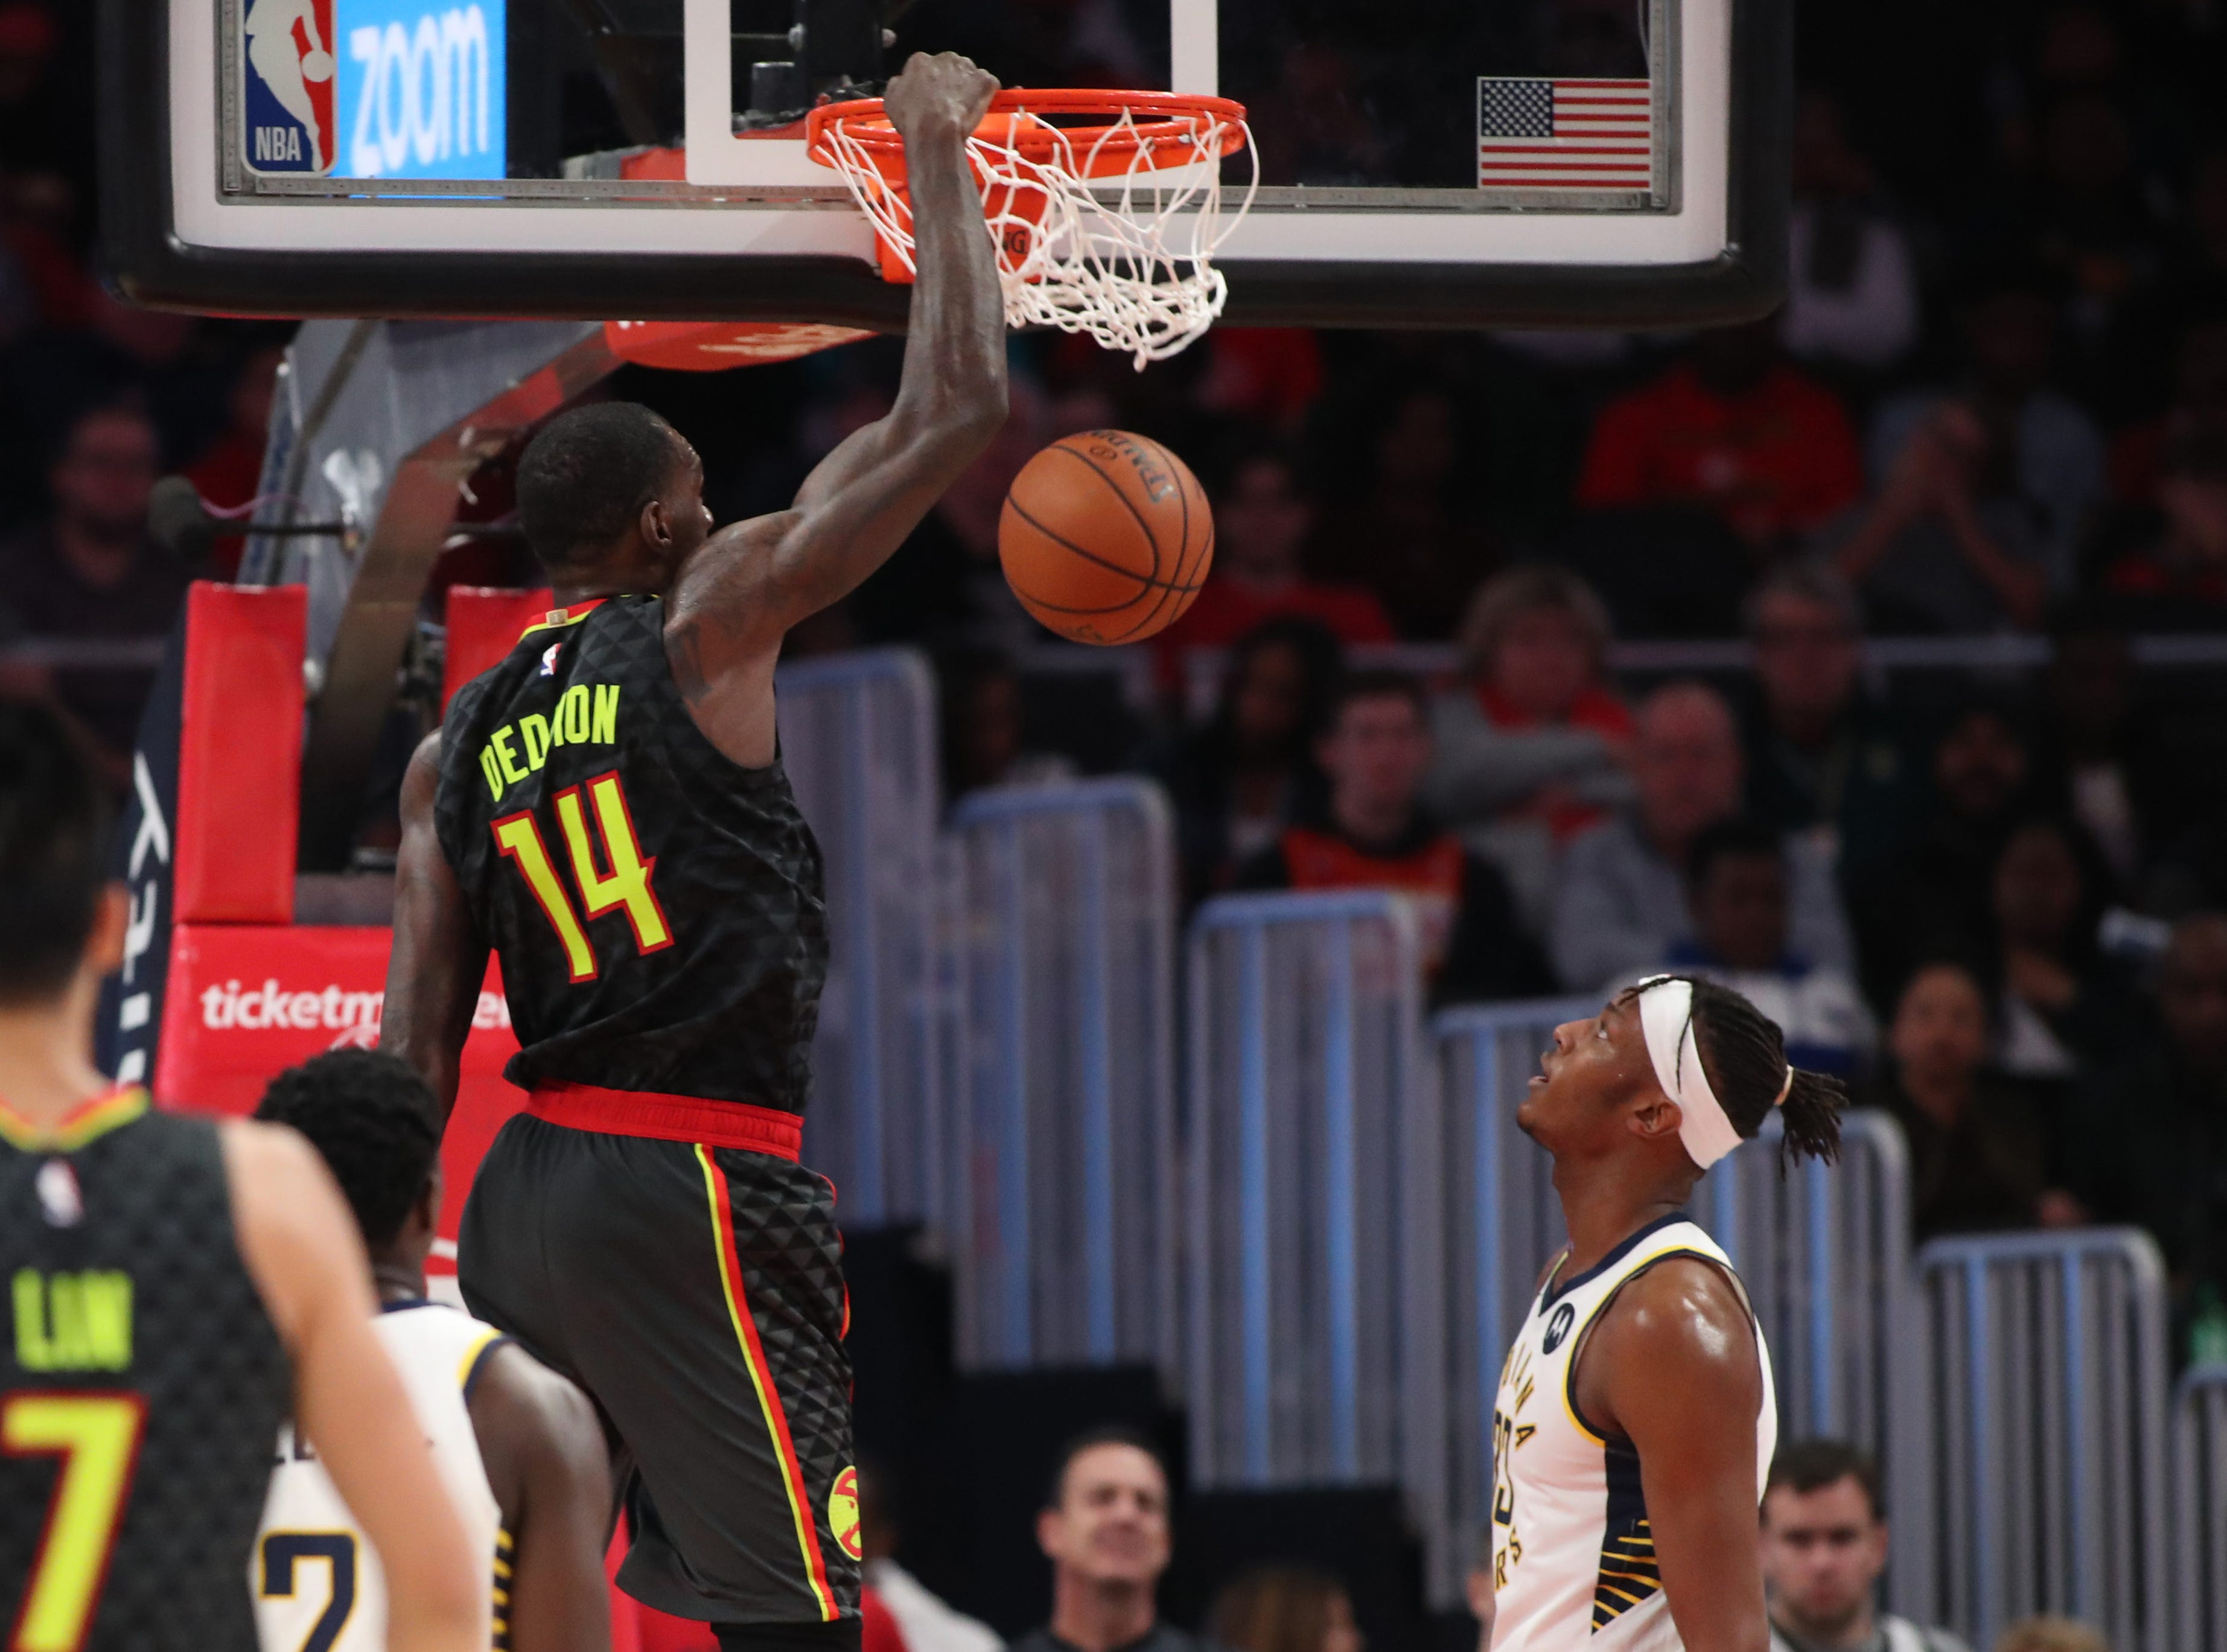 Dec 26, 2018; Atlanta, GA, USA; Atlanta Hawks center Dewayne Dedmon (14) dunks in the second quarter against the Indiana Pacers at State Farm Arena. Mandatory Credit: Jason Getz-USA TODAY Sports